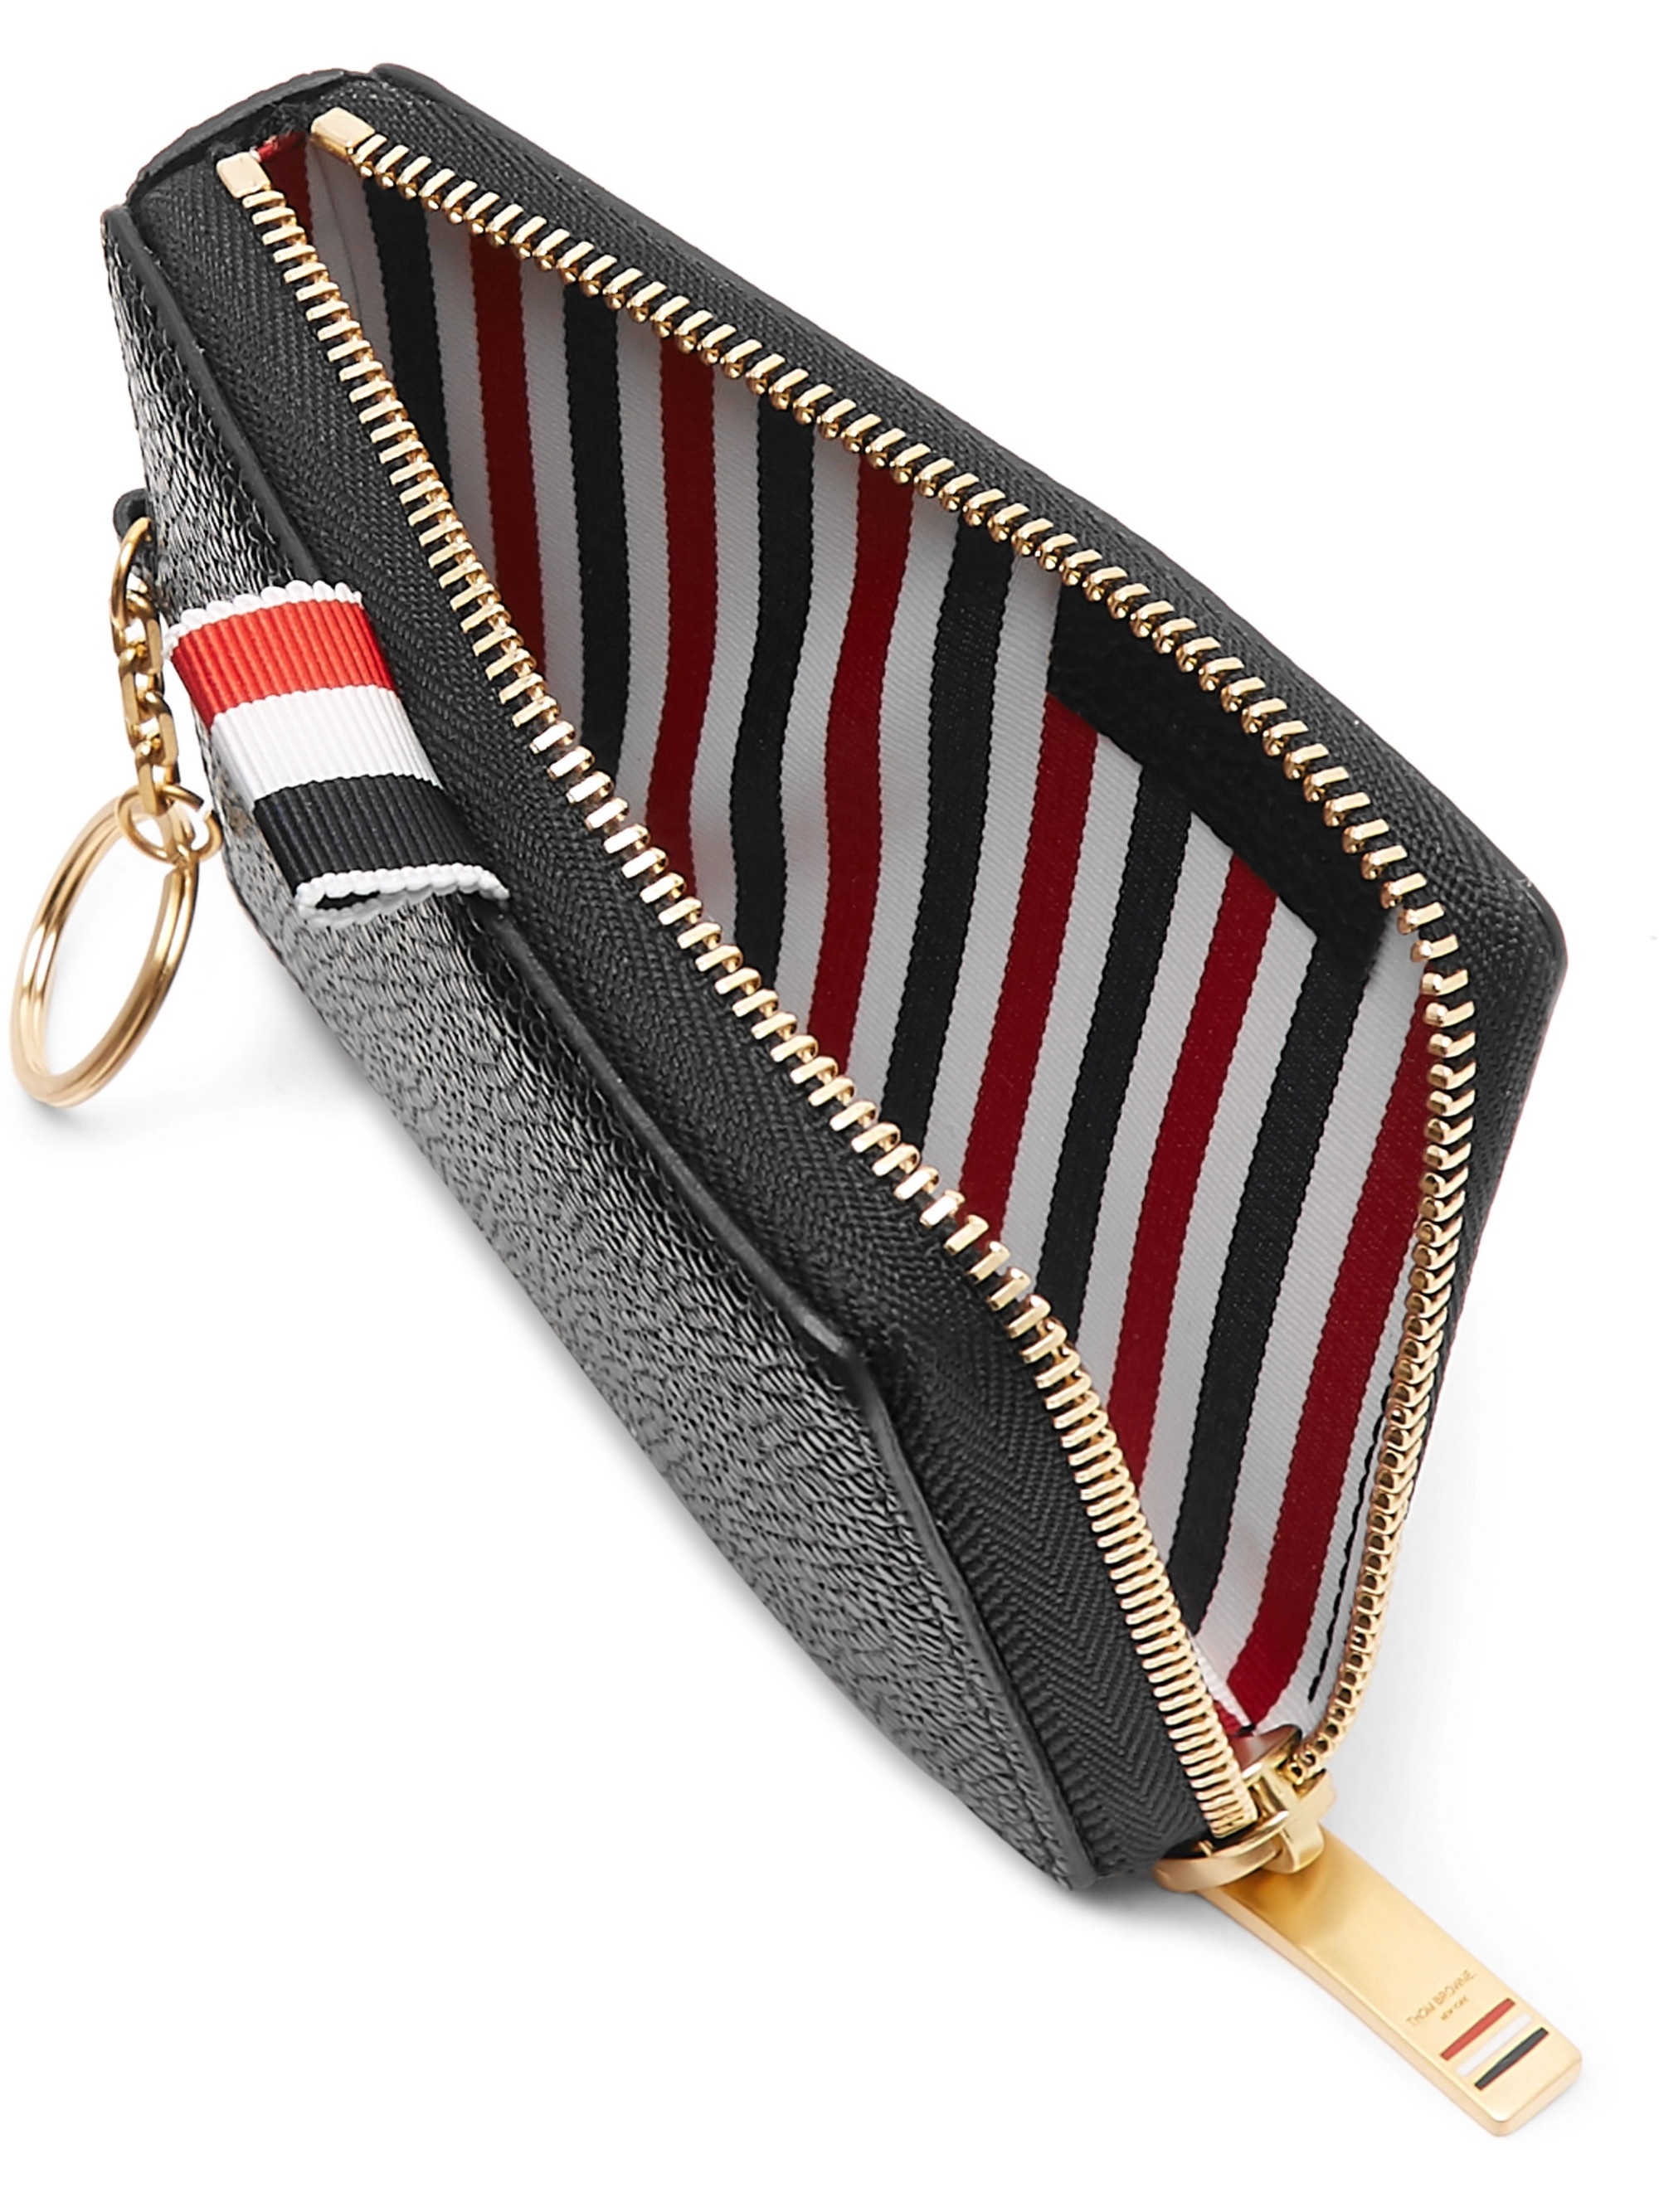 Thom Browne Striped Grosgrain-Trimmed Pebble-Grain Leather Zip-Around Wallet